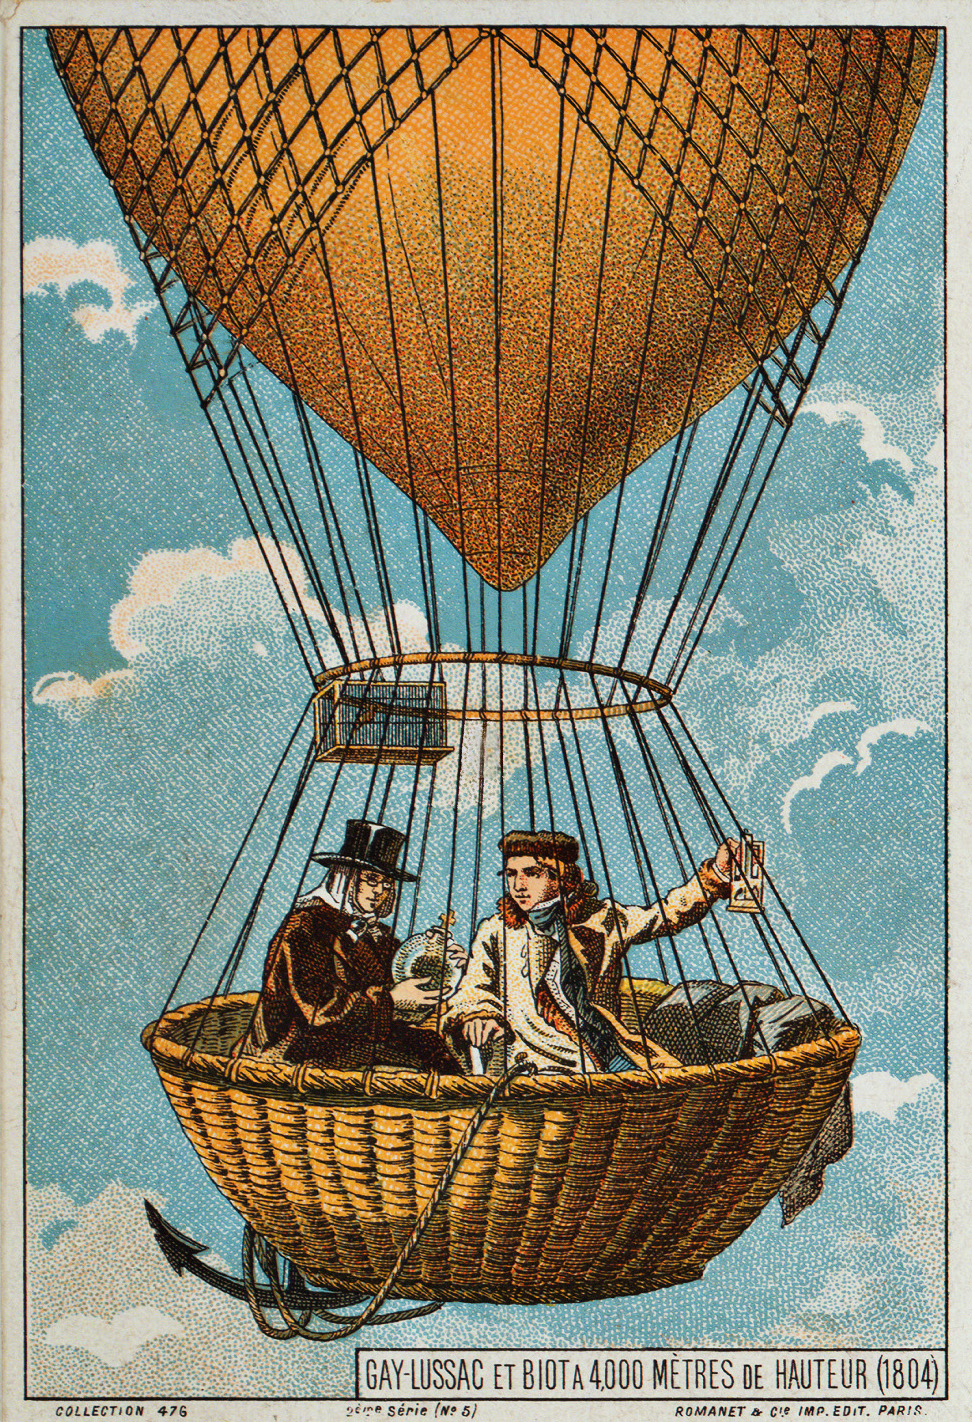 A late 19th-century illustration of Gay-Lussac and Biot ascending to 4,000 m (13,000 ft) in a hot-air balloon in 1804.